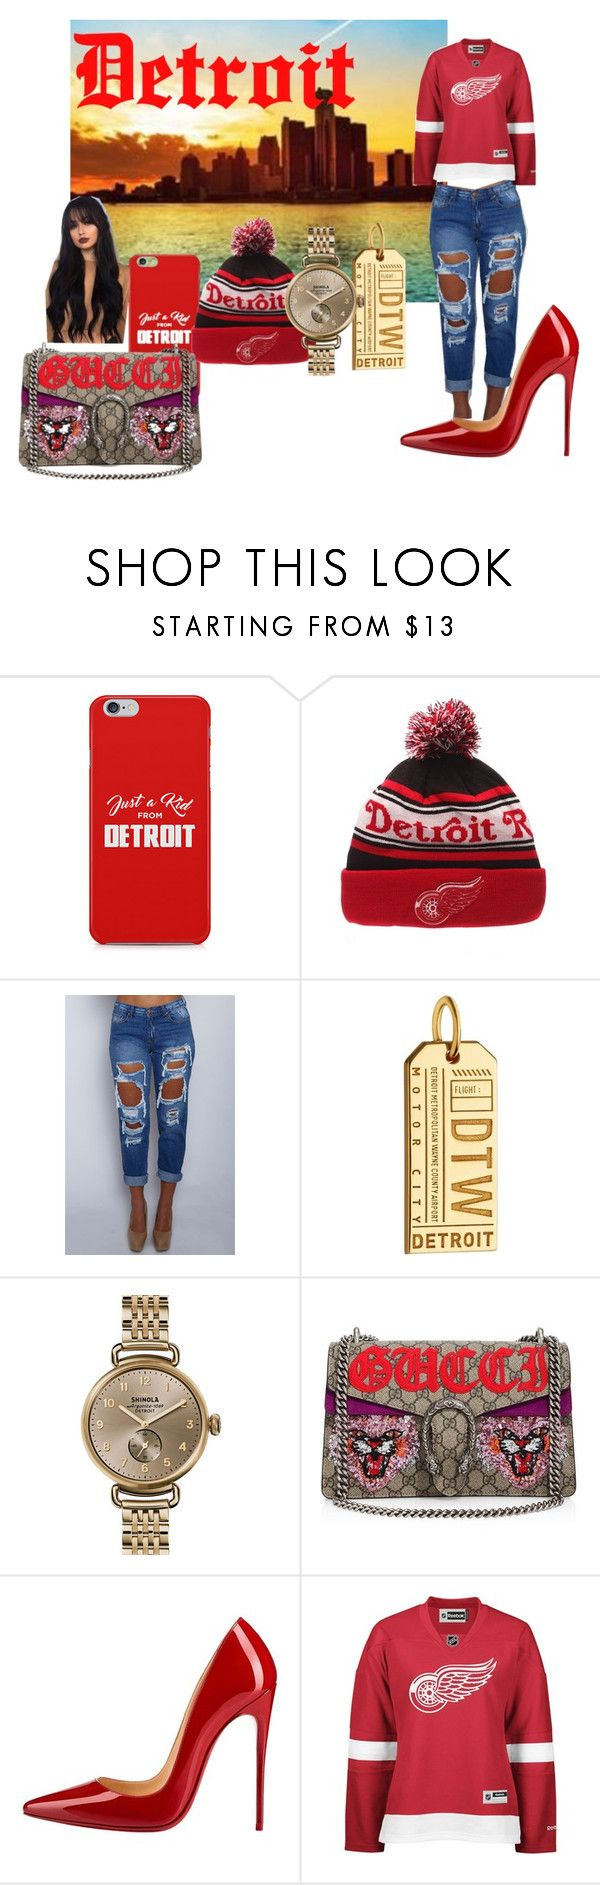 """My City"" by kkeeaannii on Polyvore featuring Zephyr, Jet Set Candy, Shinola, Gucci, Christian Louboutin and Reebok"